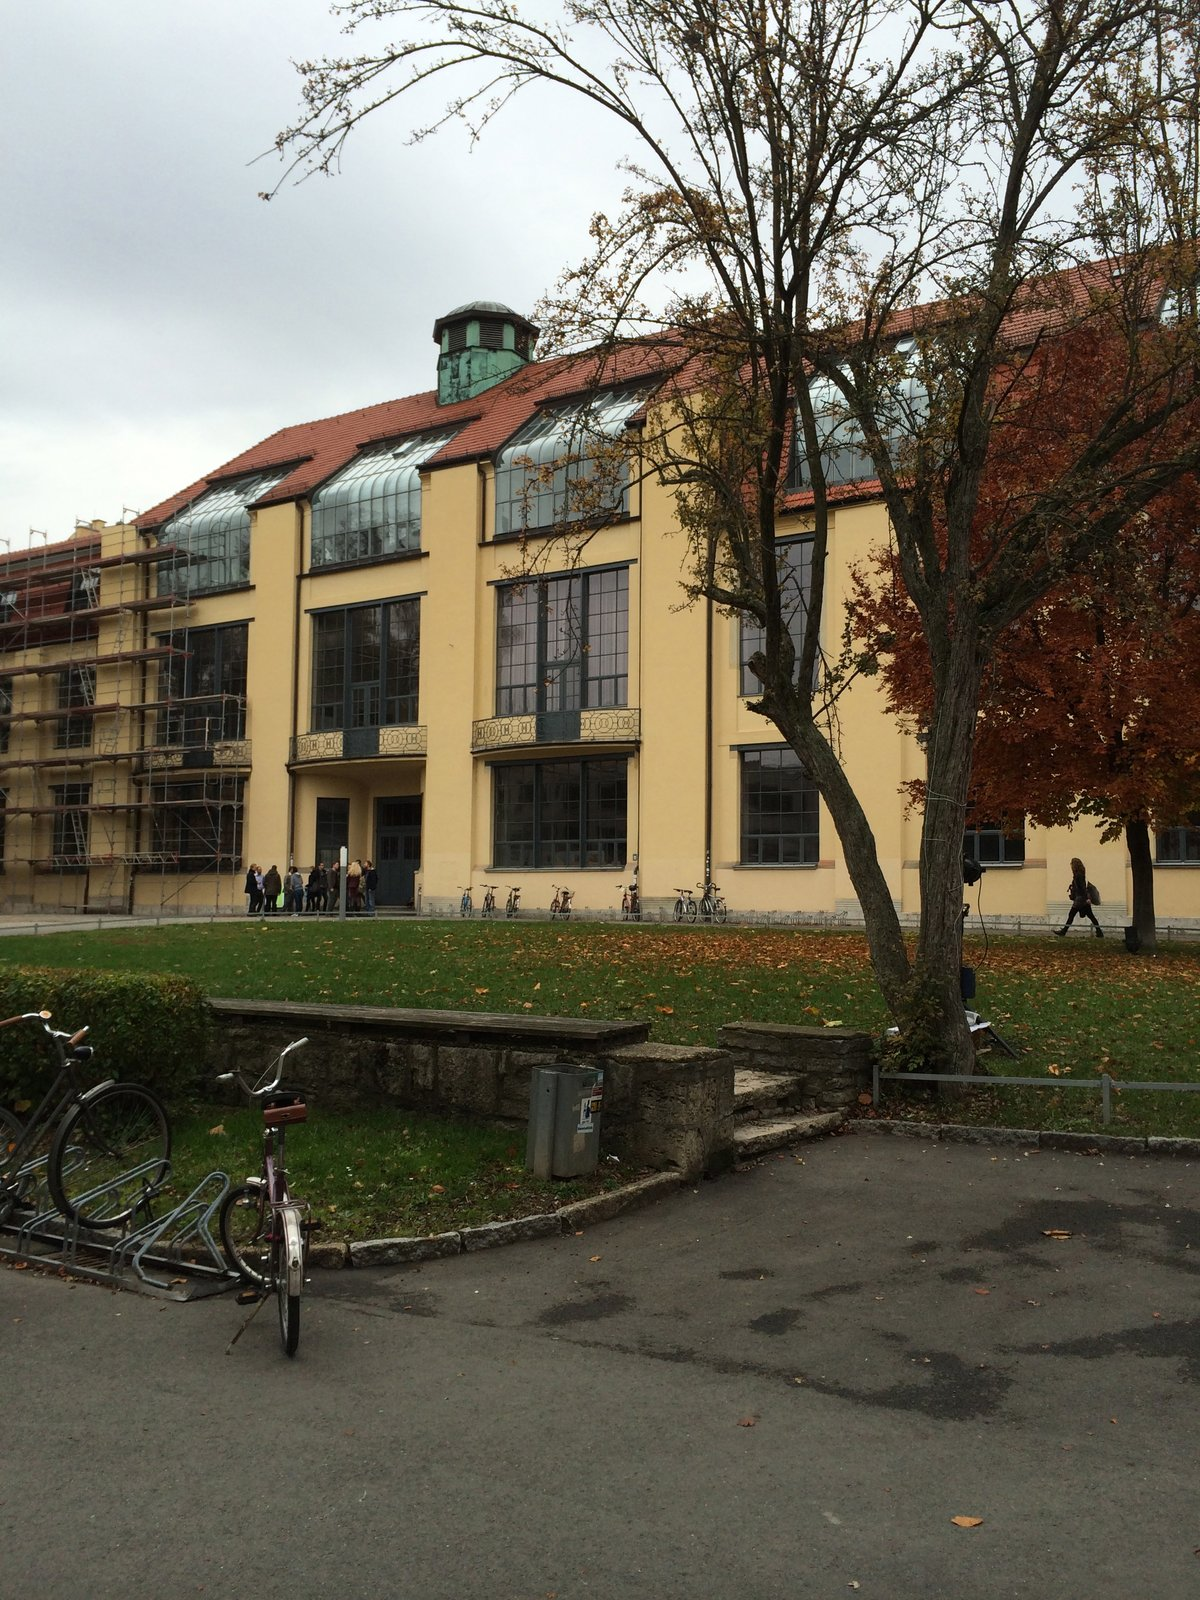 Founded in 1919 by Walter Gropius, the Bauhaus school was housed in the former Grand-Ducal Saxon Academy of Fine Arts and the School of Arts and Crafts by Henry Van de Velde. One of the founding principles of the school was to unify all creative efforts by combining art theory with practical workshops. The building shown here housed most of the classrooms, studios, and workshops. Renovated in 1996, it is now home to a new Bauhaus school, named and modeled after Gropius's original program, which was ended in 1933 due to pressure from the Nazi regime.  Photo 6 of 9 in Design Icon: Walter Gropius